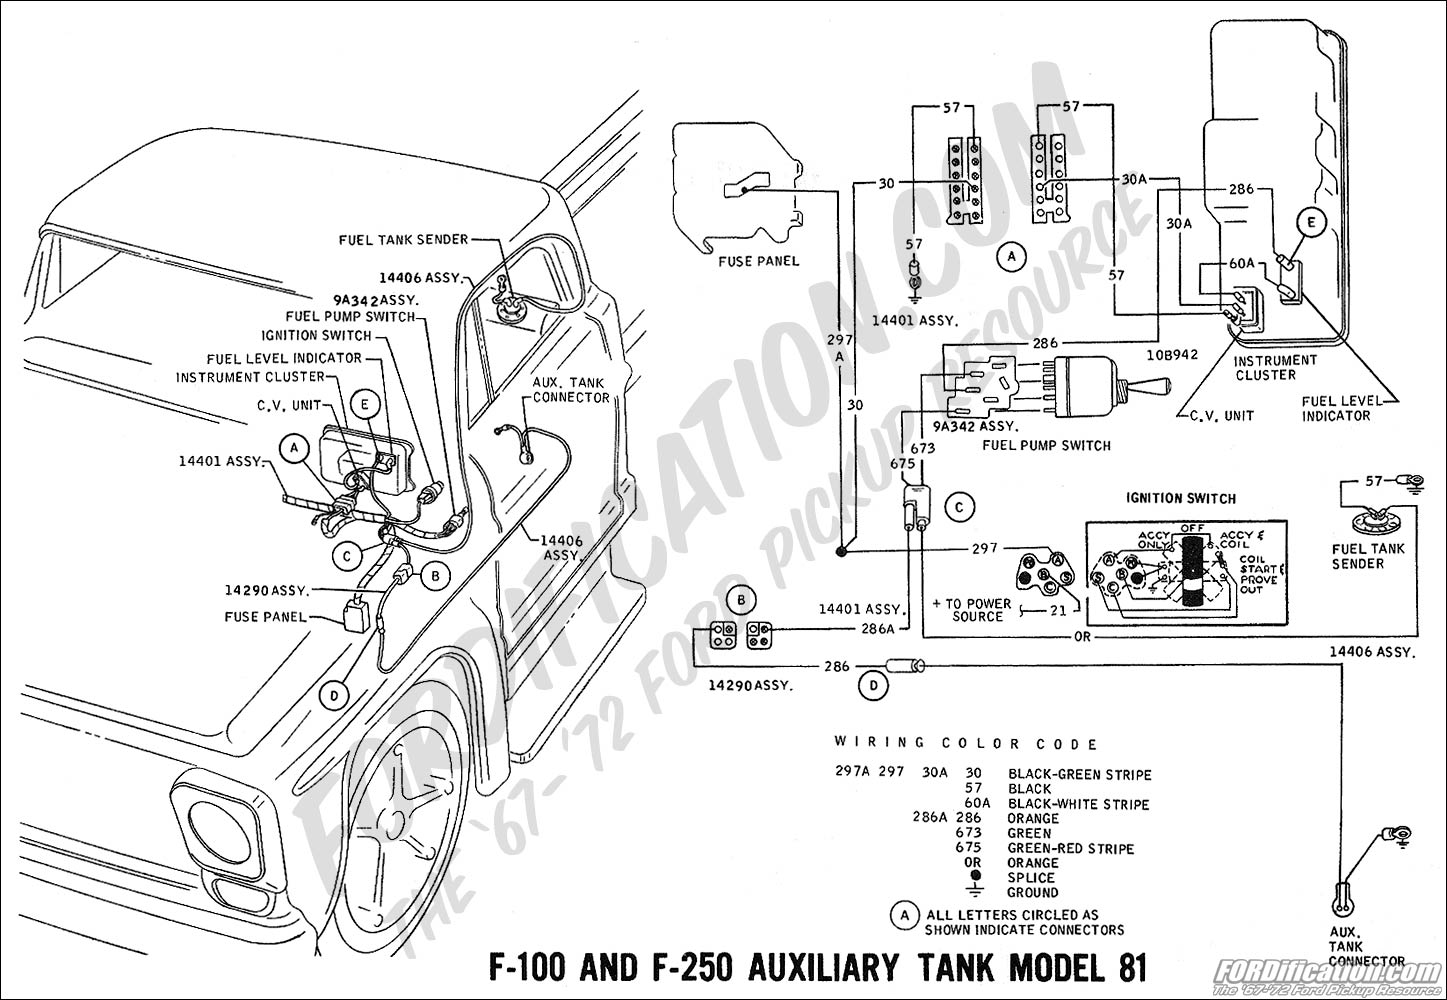 1991 Ford F 150 Fuse Box Diagram Wiring Libraries 98 1989 F150 Diagrams Scematic1991 F700 Explained